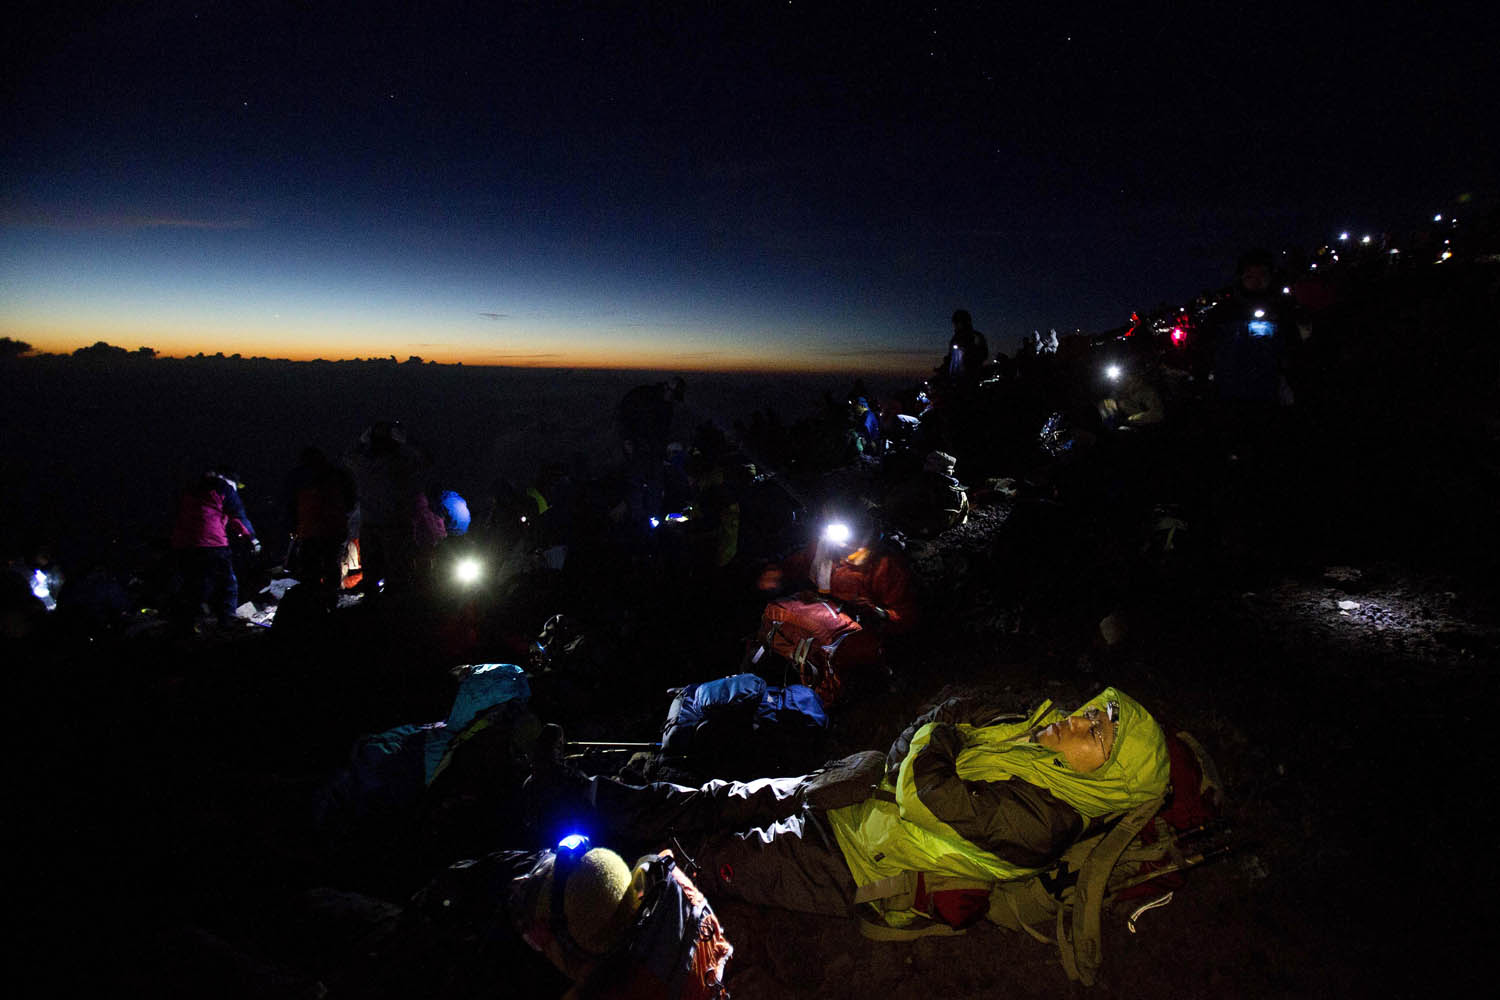 Aug. 11, 2013. Thousands of hikers wait for the sun to rise on the summit of Mount Fuji before dawn.